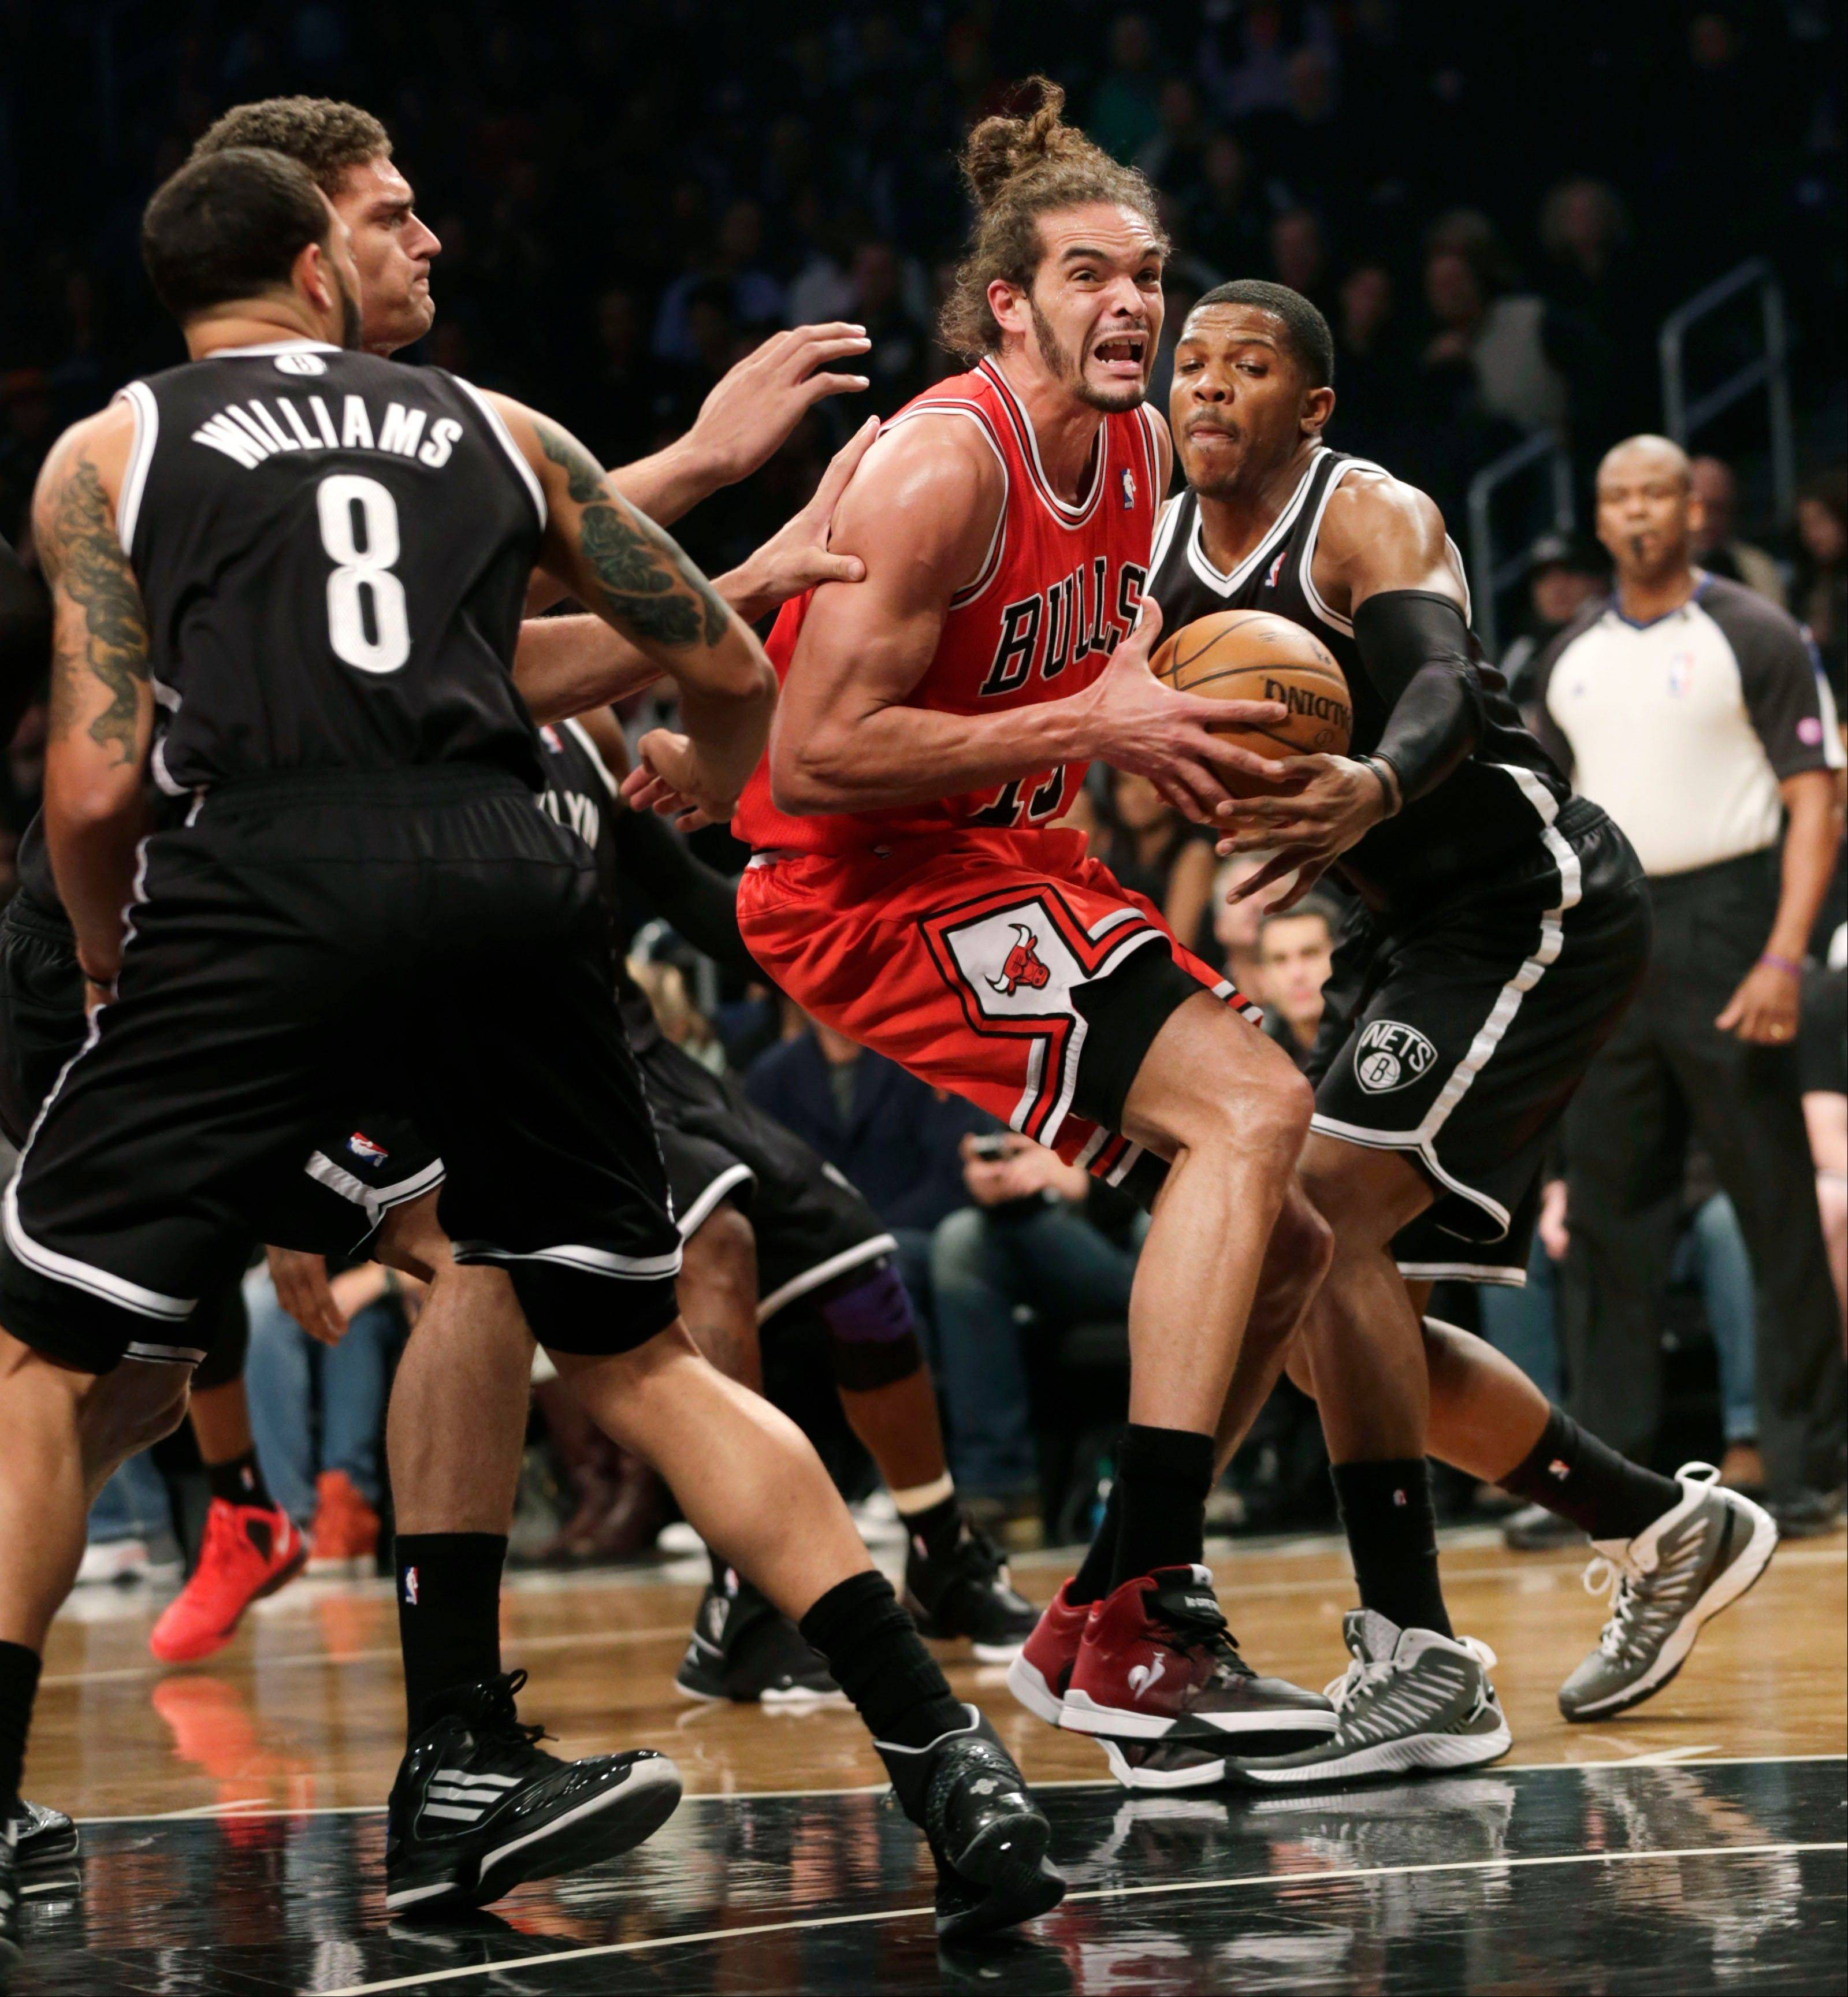 Chicago Bulls' Joakim Noah, second from right, tries to get through the Brooklyn Nets defense, including Joe Johnson, right, during the first quarter.